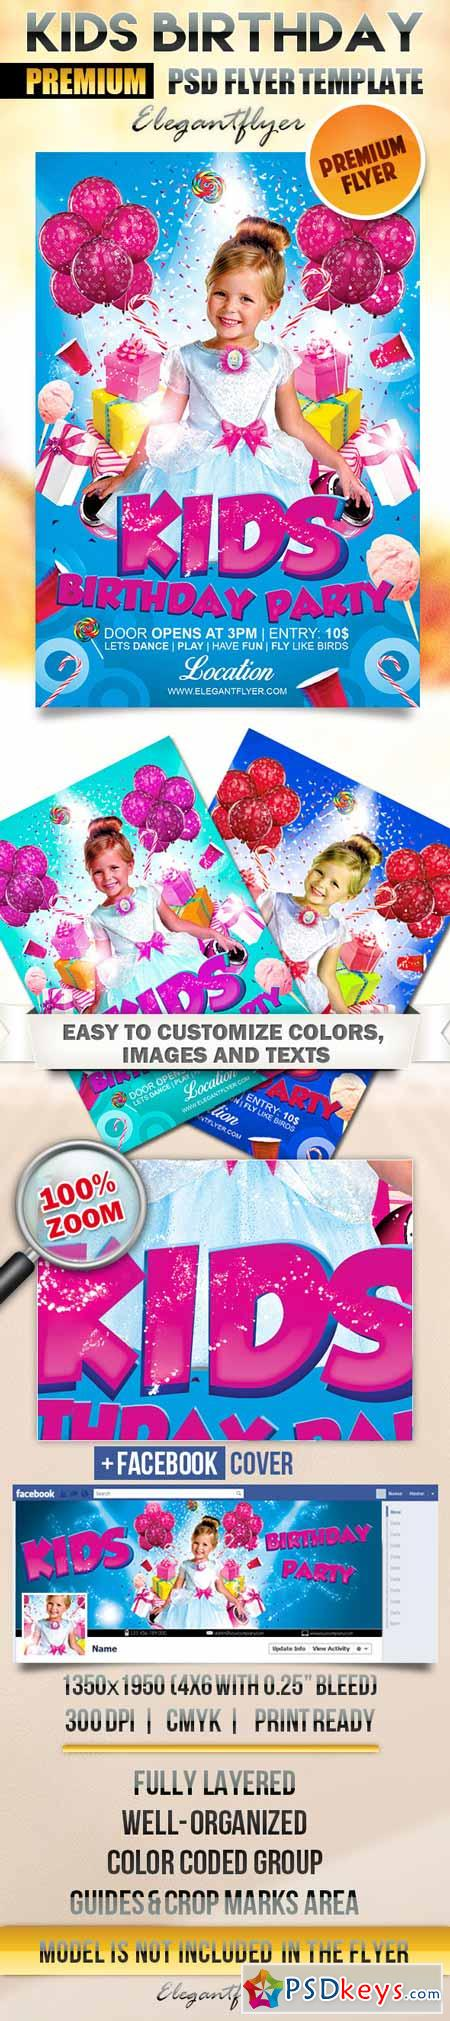 Kids Birthday Party Flyer Template Free